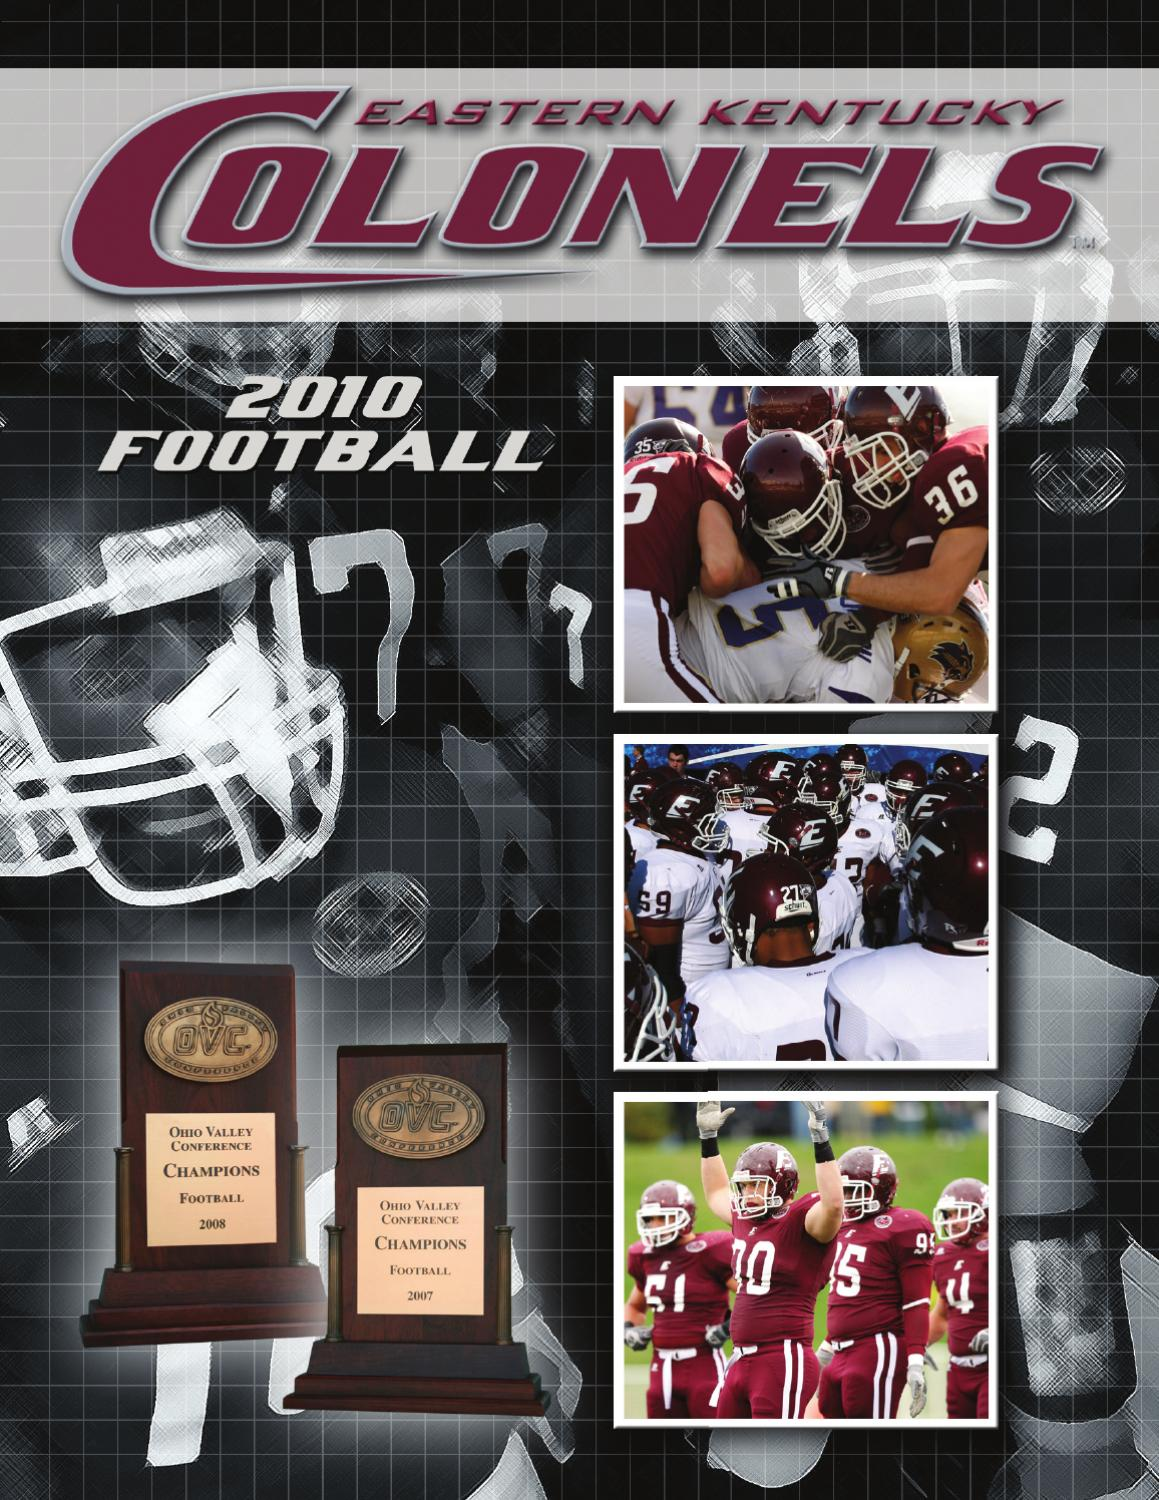 214165a442c 2010 EKU Football Guide by EKU Sports - issuu